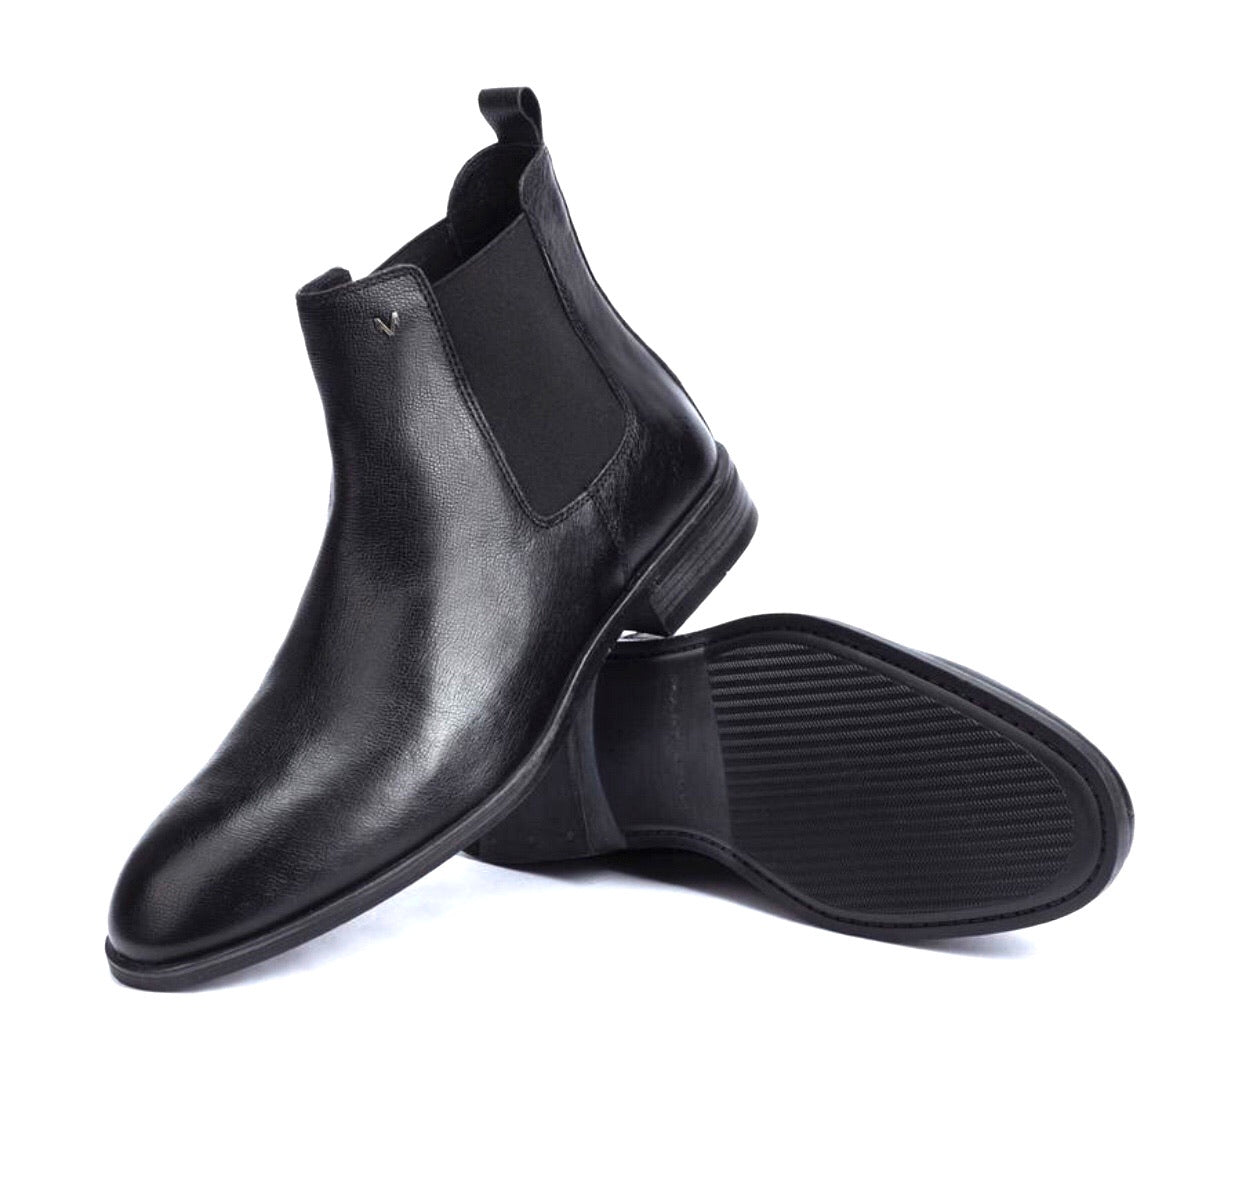 Martinelli 1456-2540R Warren Black Leather Chelsea Boot Made In Spain